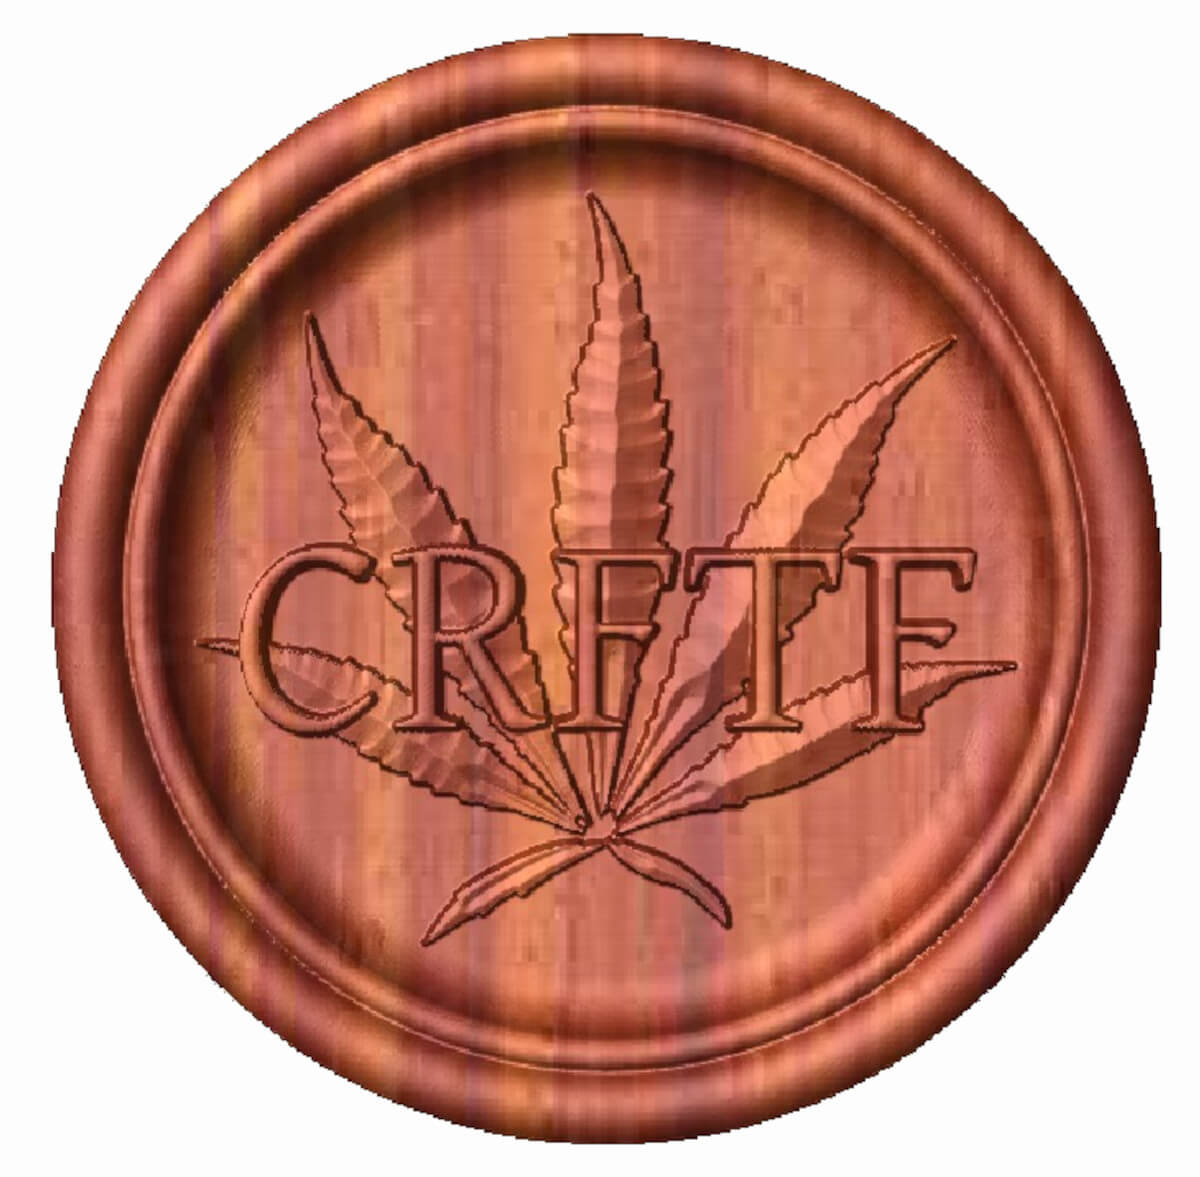 CRFTF cannabis button